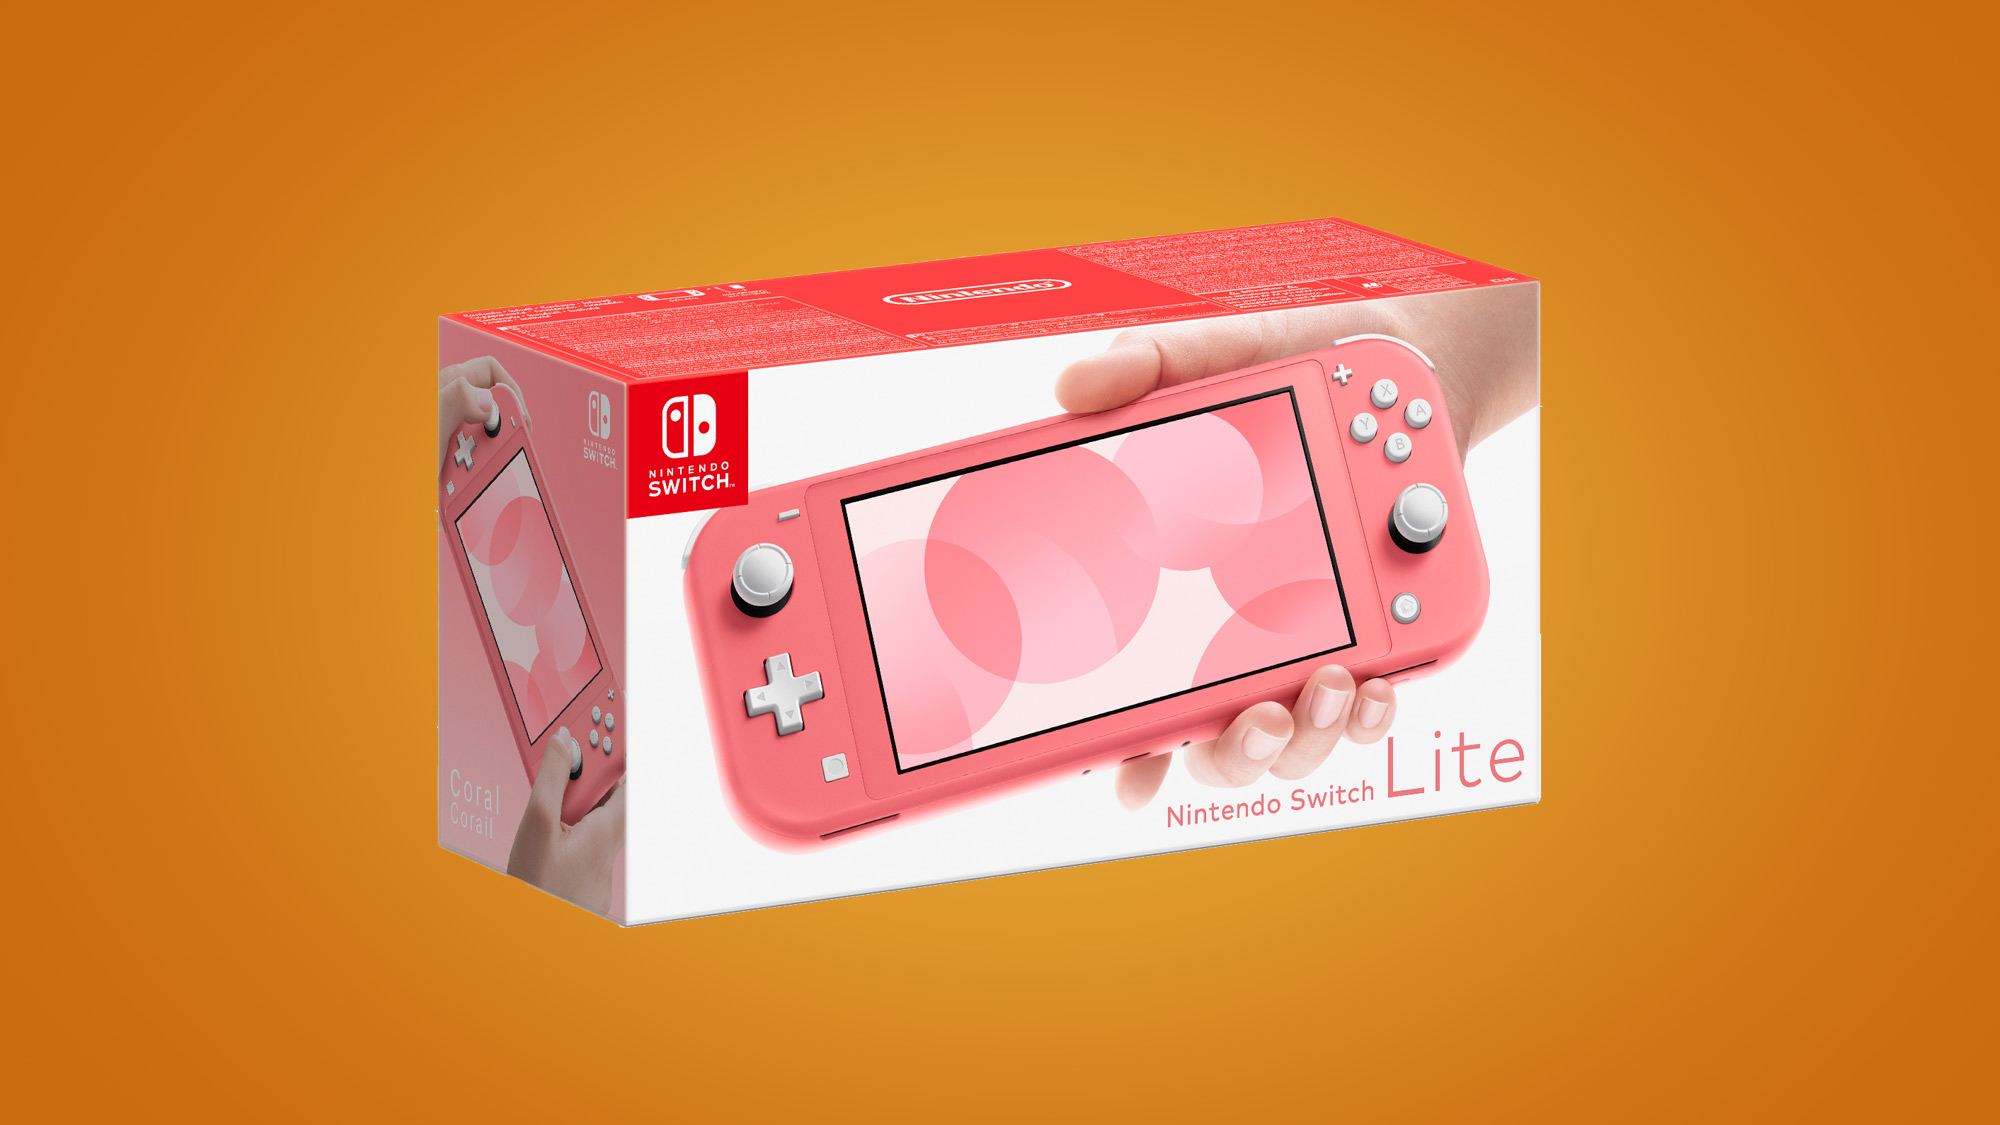 The Nintendo Switch Lite gets a new coral color scheme